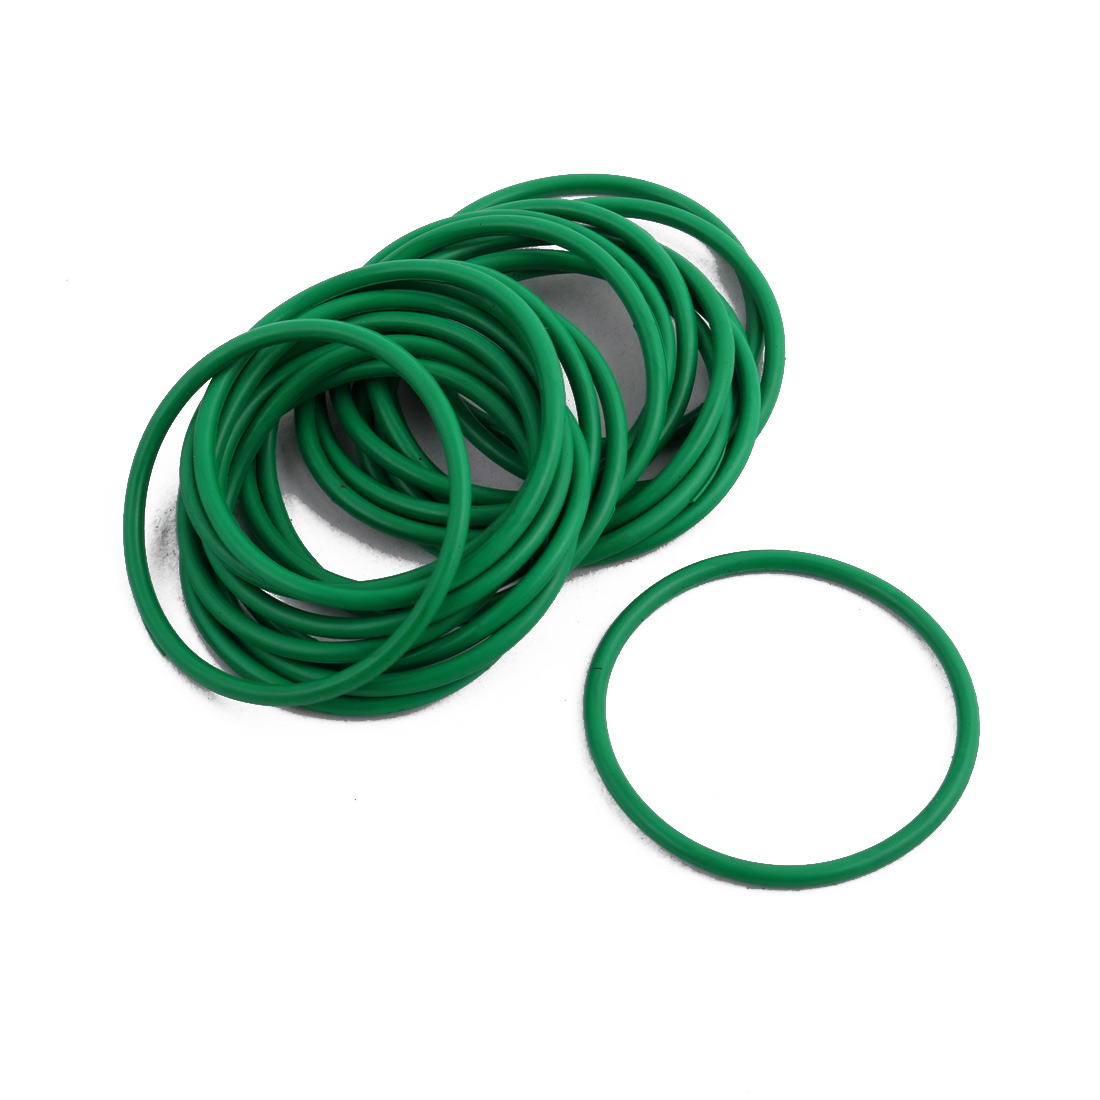 20Pcs Green 34 x 1.9mm Industrial Flexible Rubber O Ring Oil Sealing Grommets